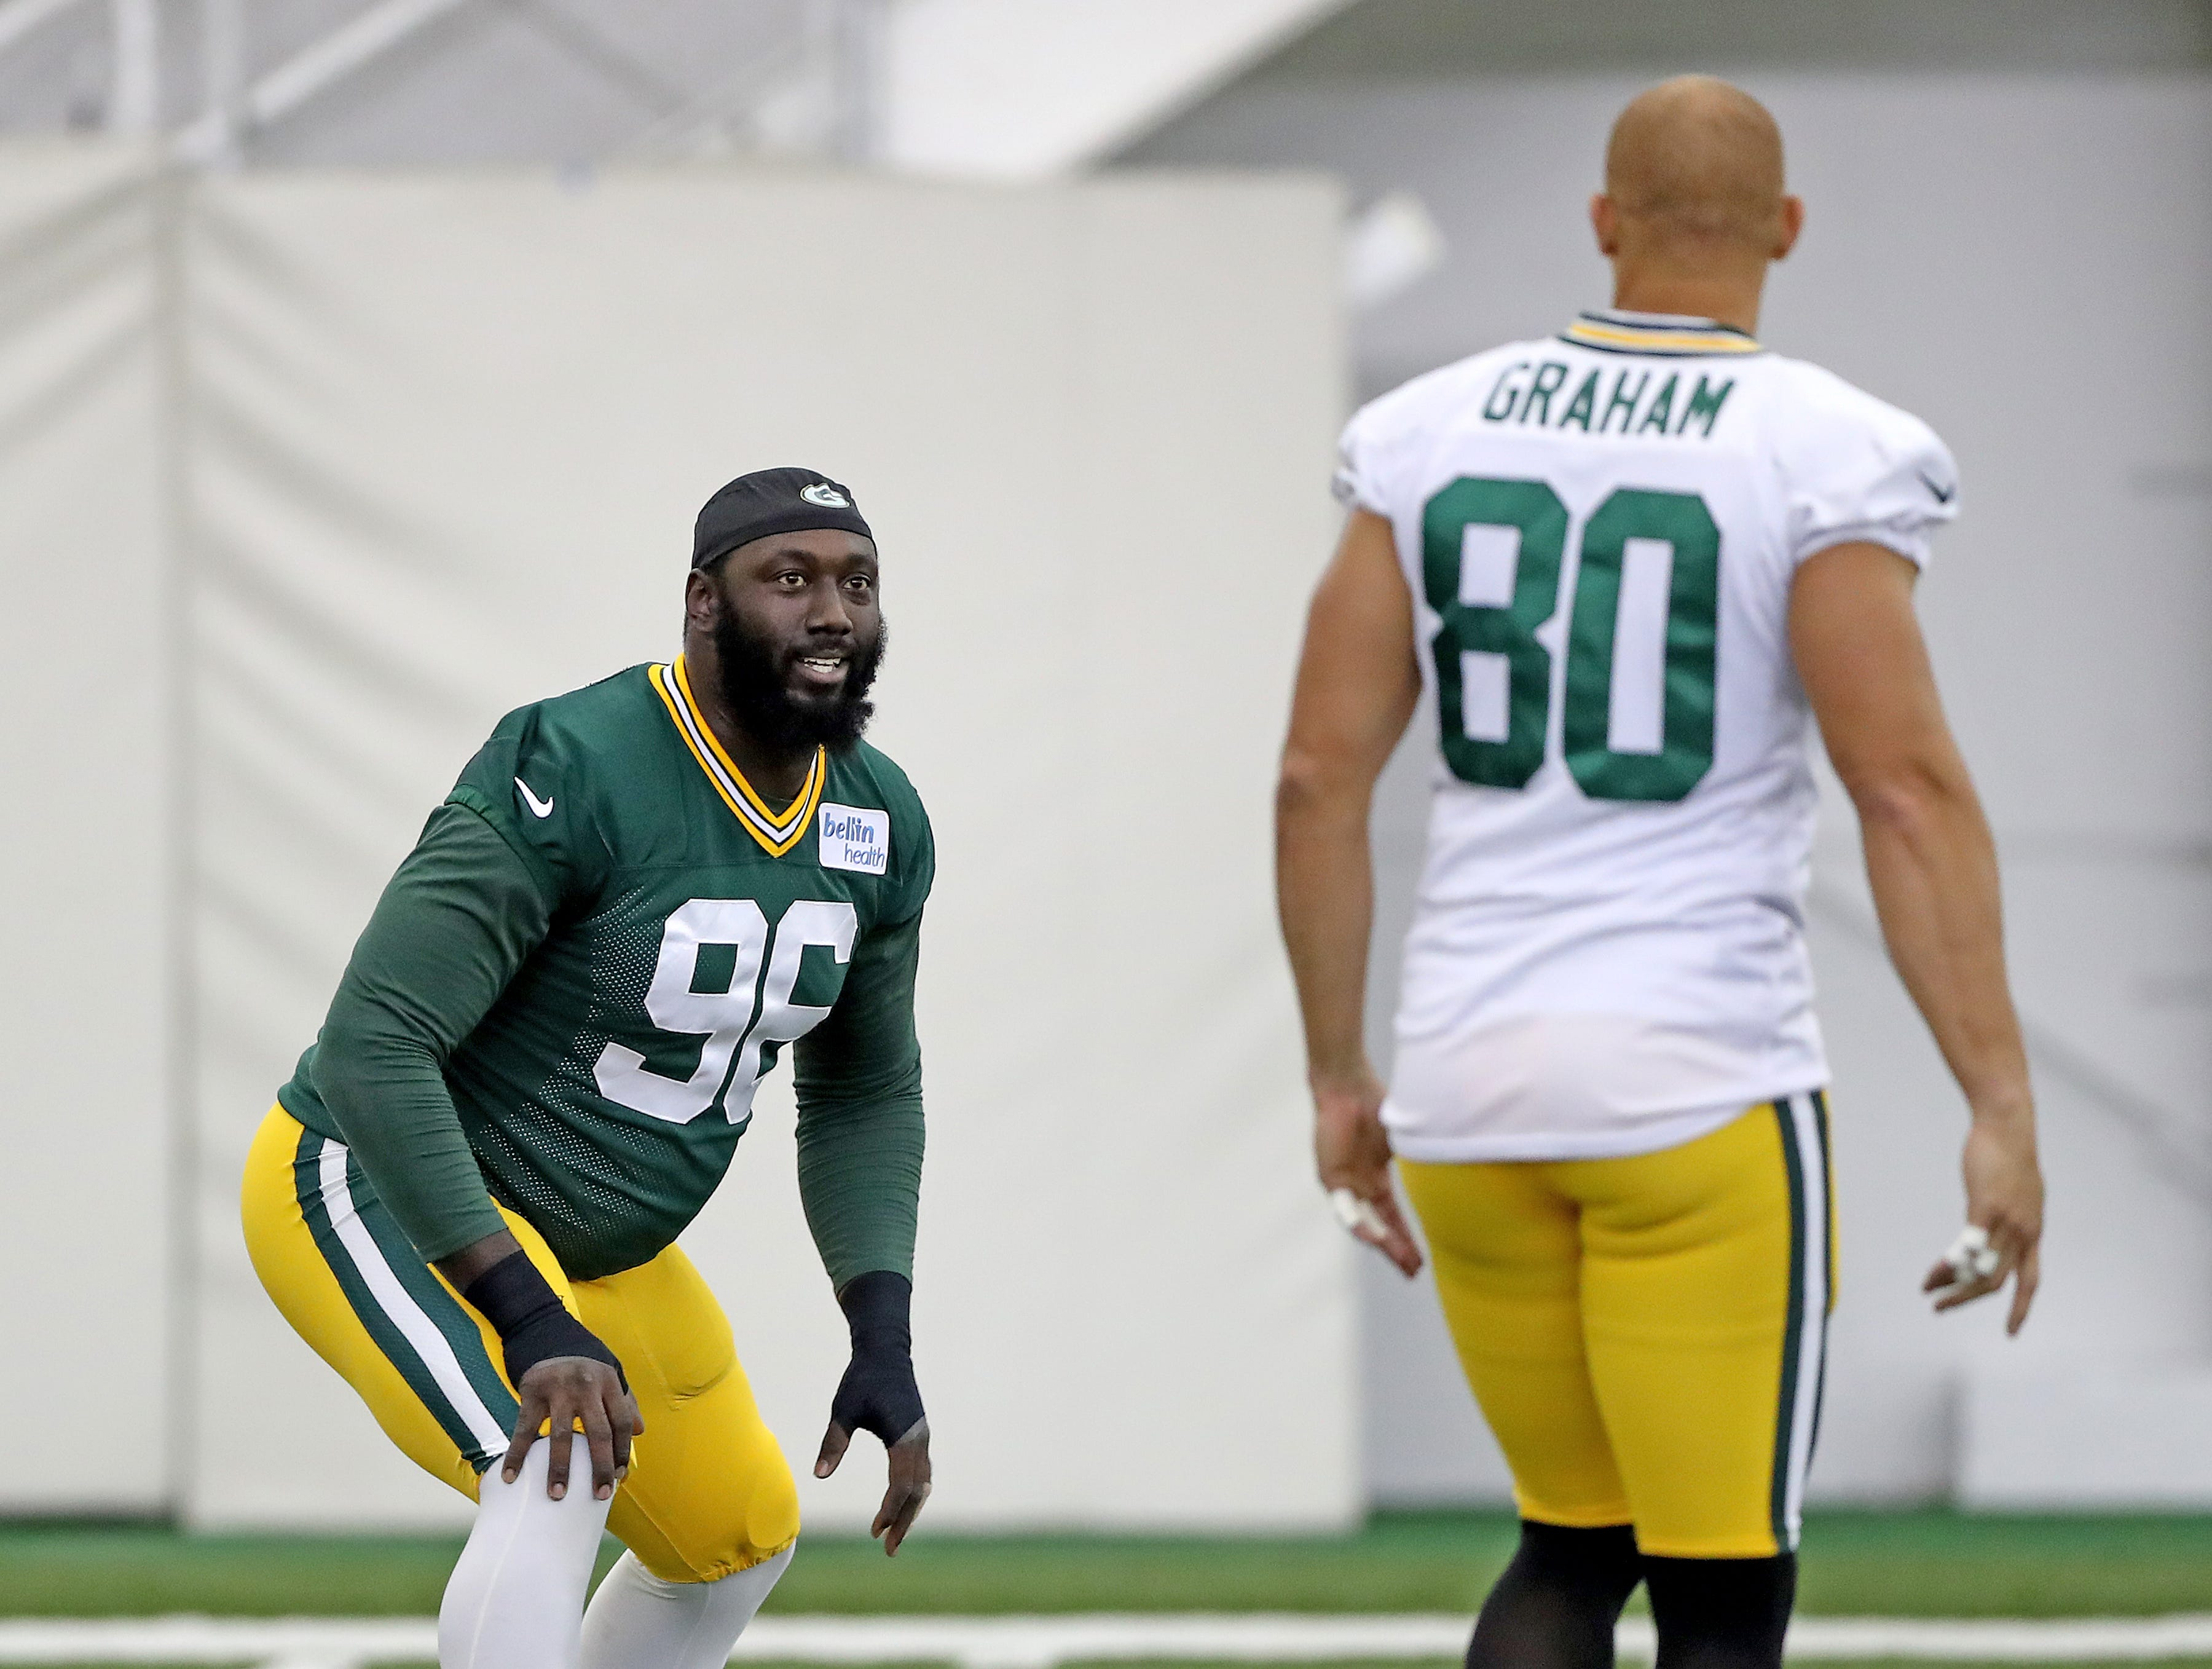 Green Bay Packers defensive end Muhammad Wilkerson (96) talks with tight end Jimmy Graham (80) during Packers practice in the Don Hutson Center Monday, September 3, 2018 in Ashwaubenon, Wis